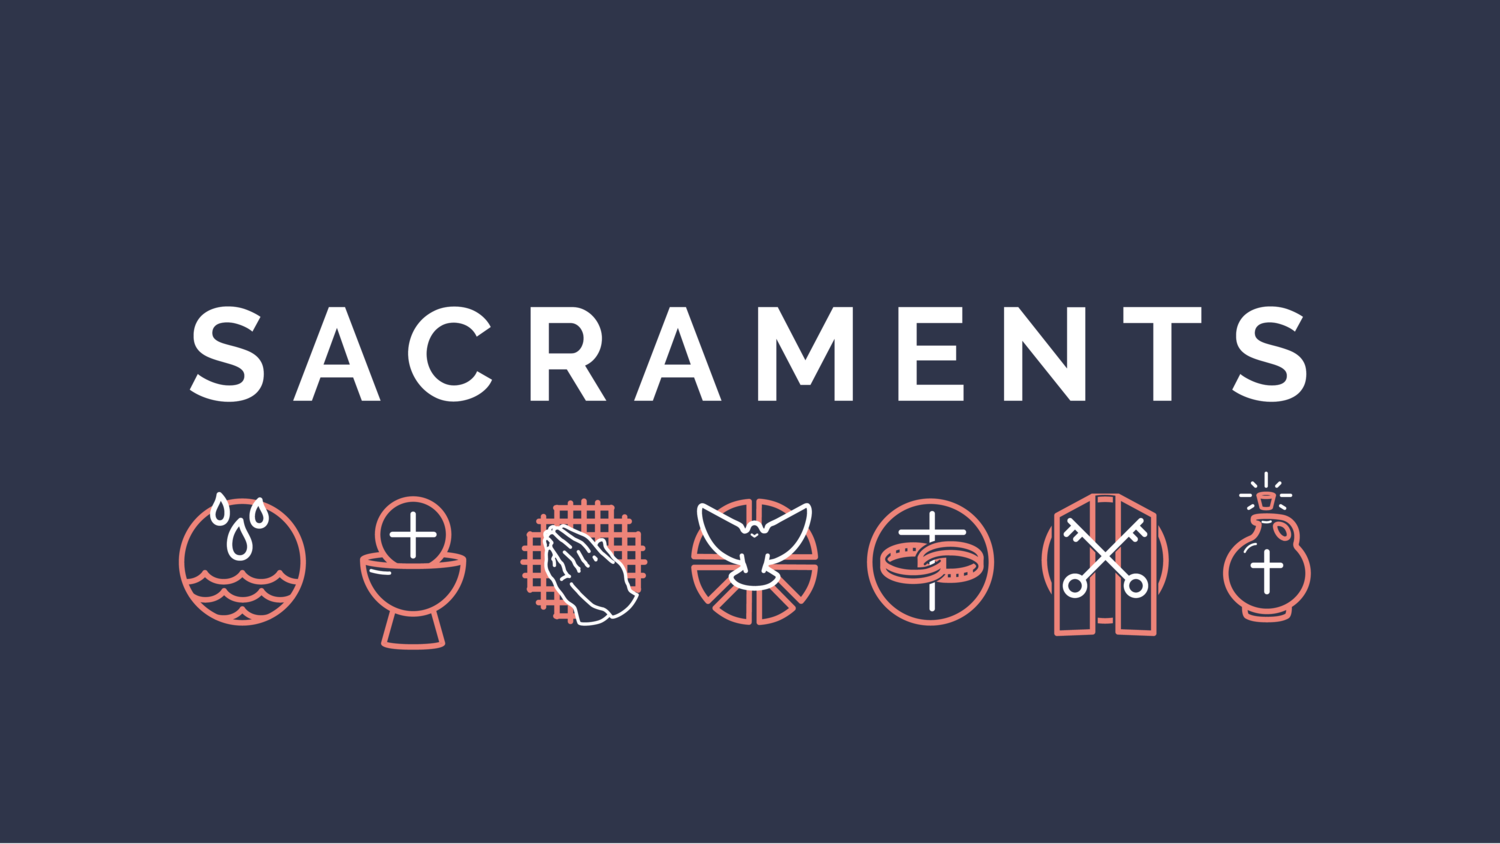 Book Open Png A Three Step Approach To Explaining The Sacraments To